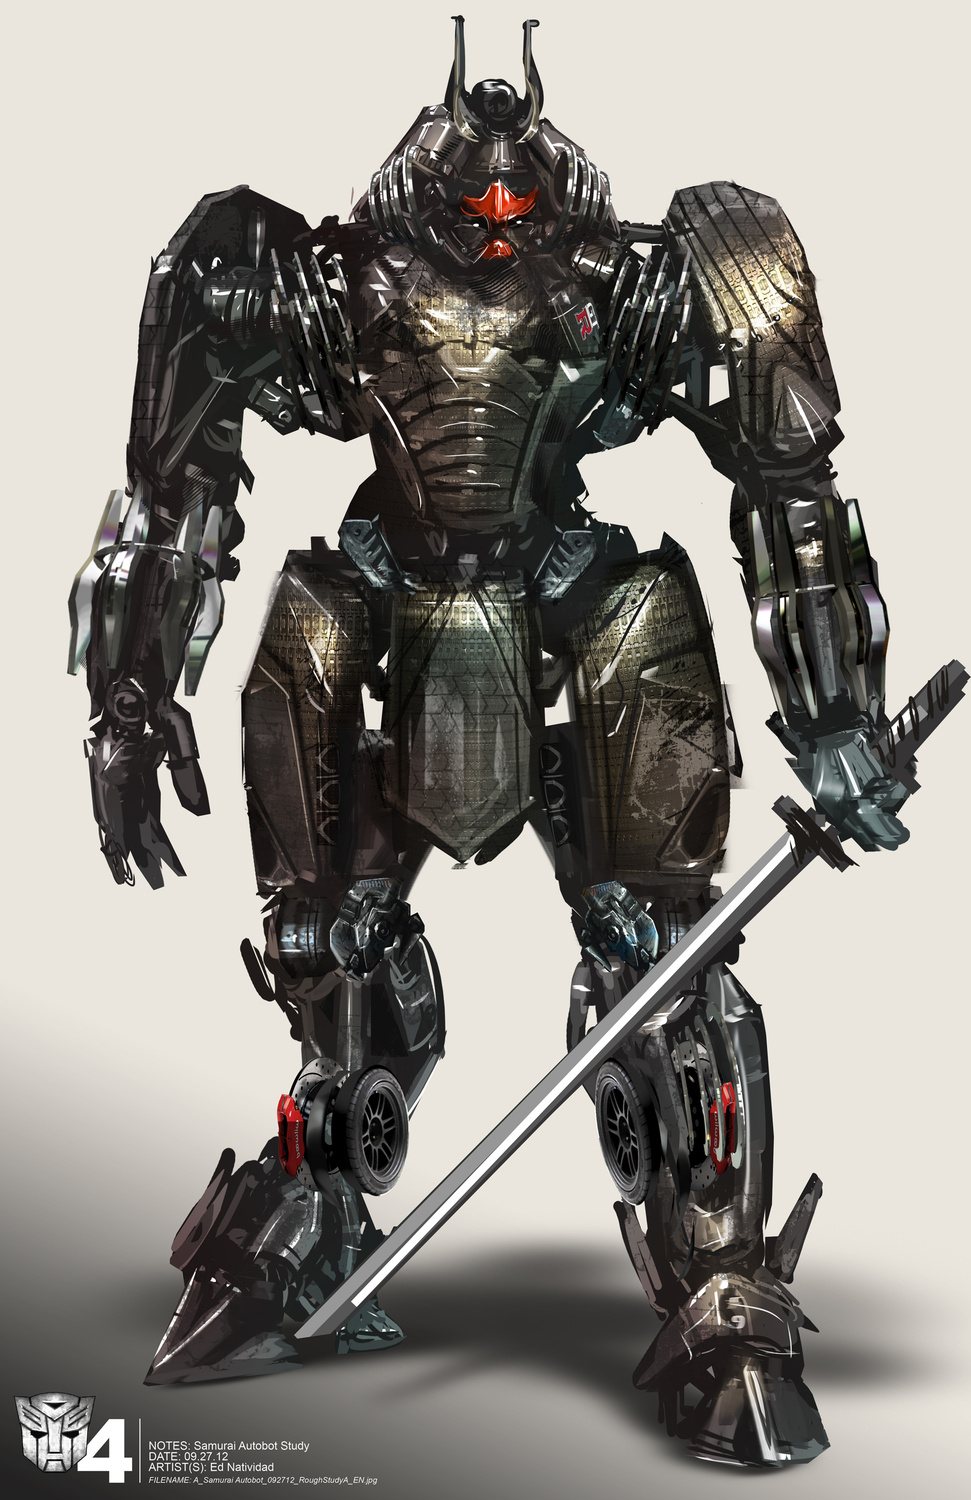 Transformers: Age of Extinction Concept Art by Ed ... Transformers